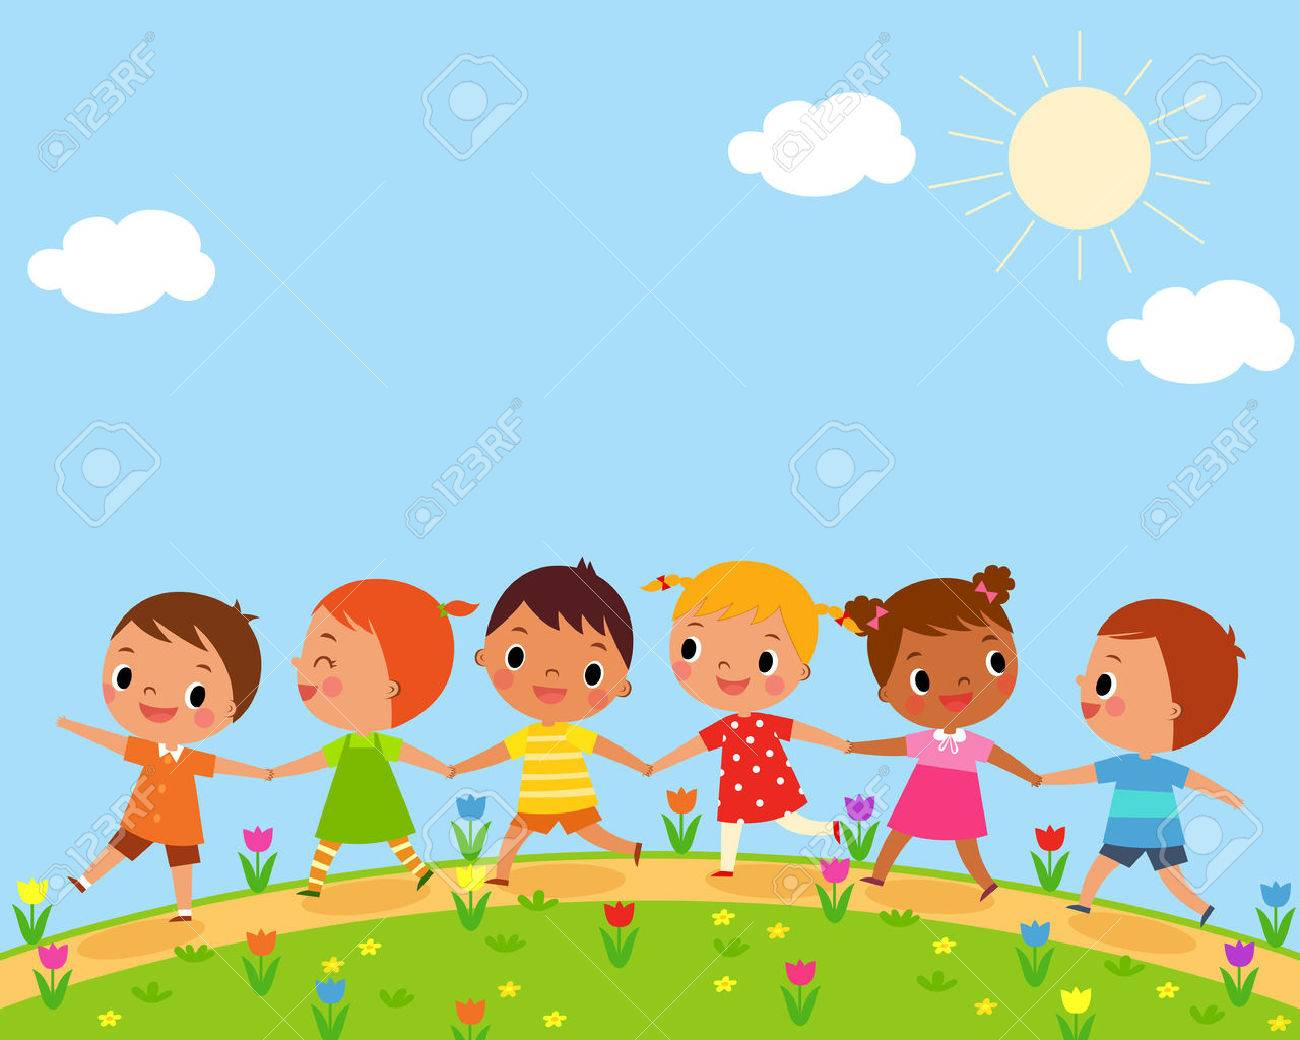 illustration of children walk on a beautiful spring day - 40688840